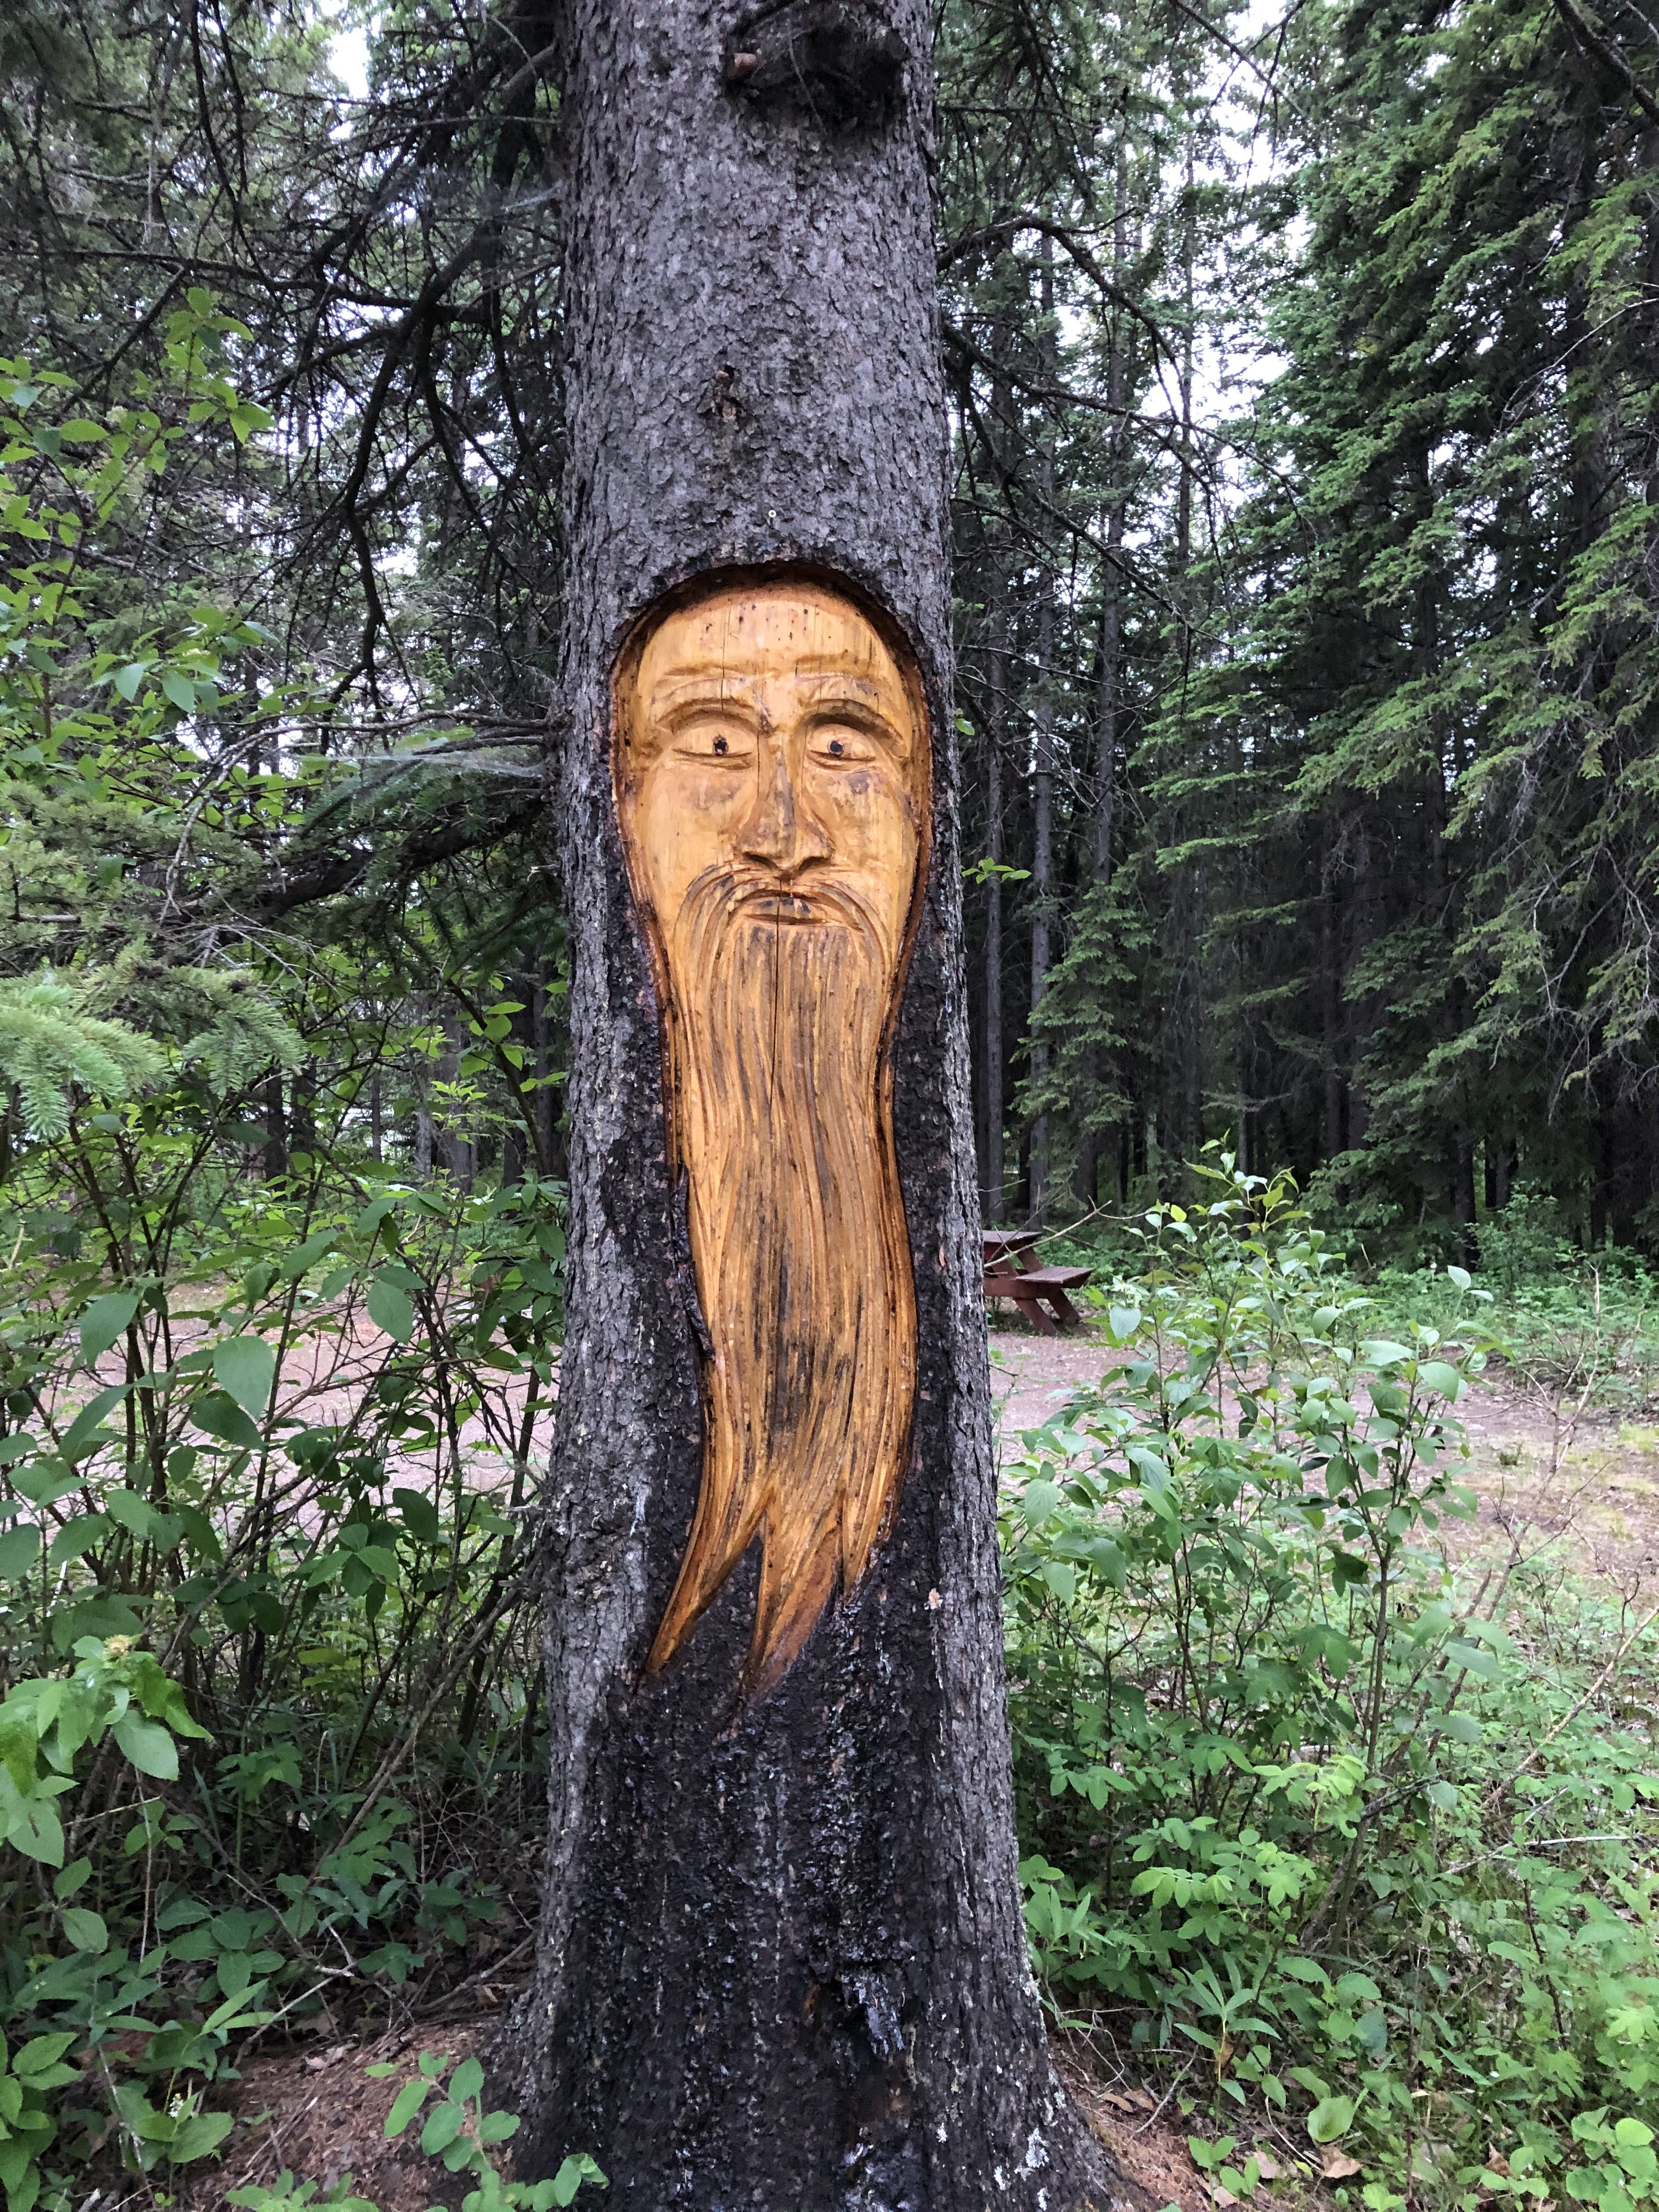 Face of old man with beard carved into side of tree